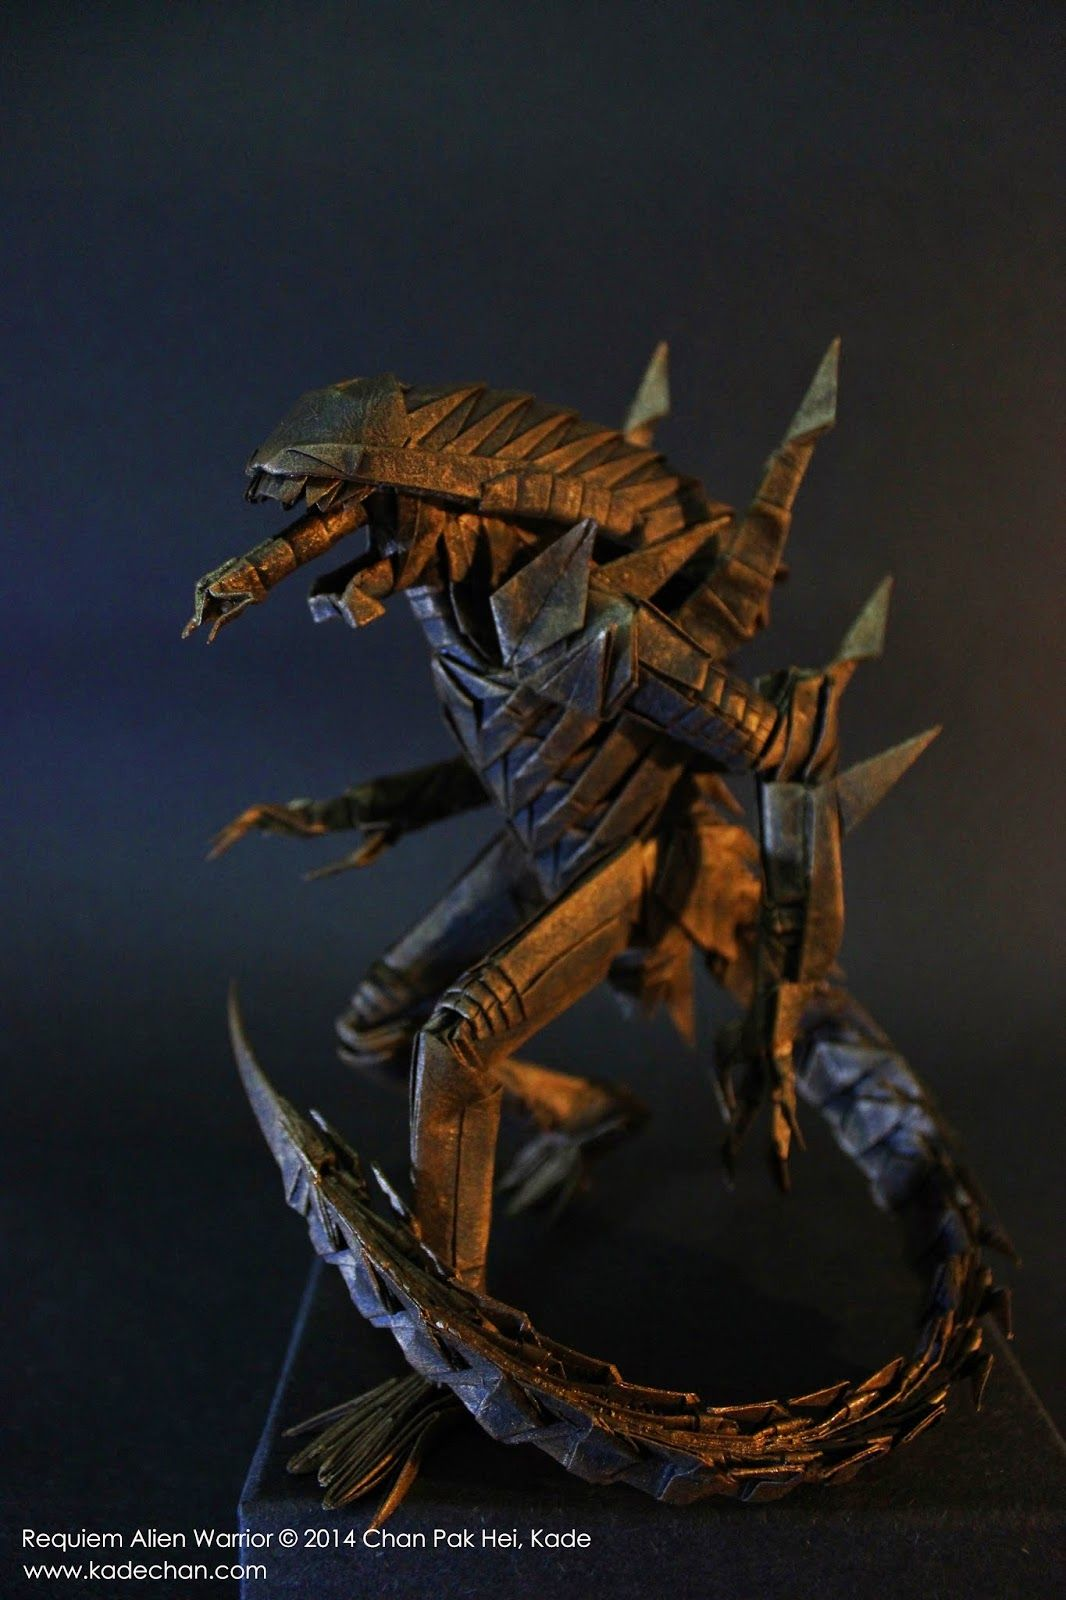 Kade chan origami blog july 2014 origami hard to believe this is origami alien warrior by kade chan jeuxipadfo Images